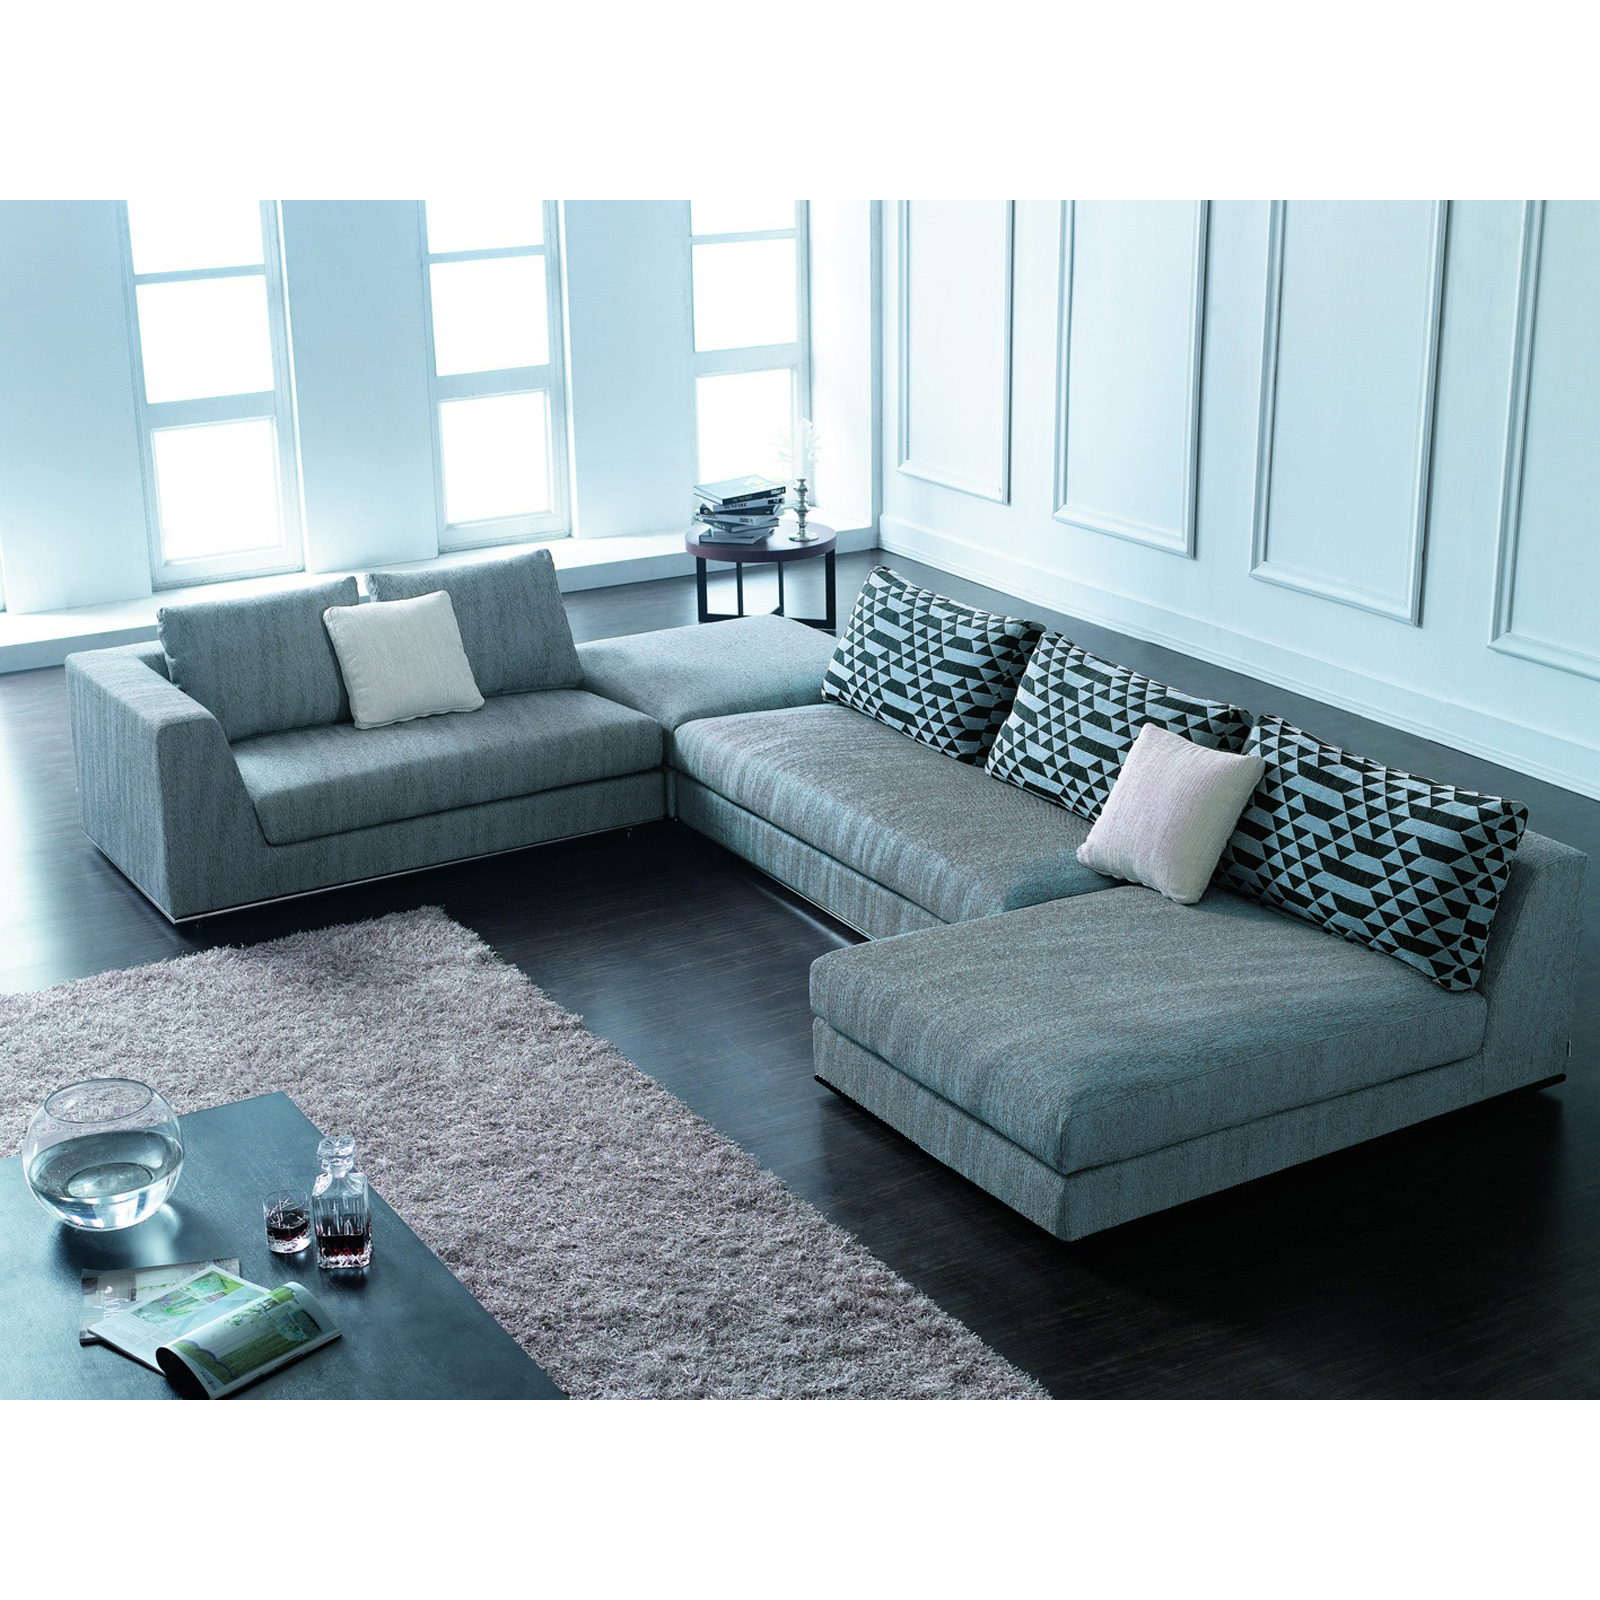 Superb Contemporary Microfiber Sectional Sofa 2